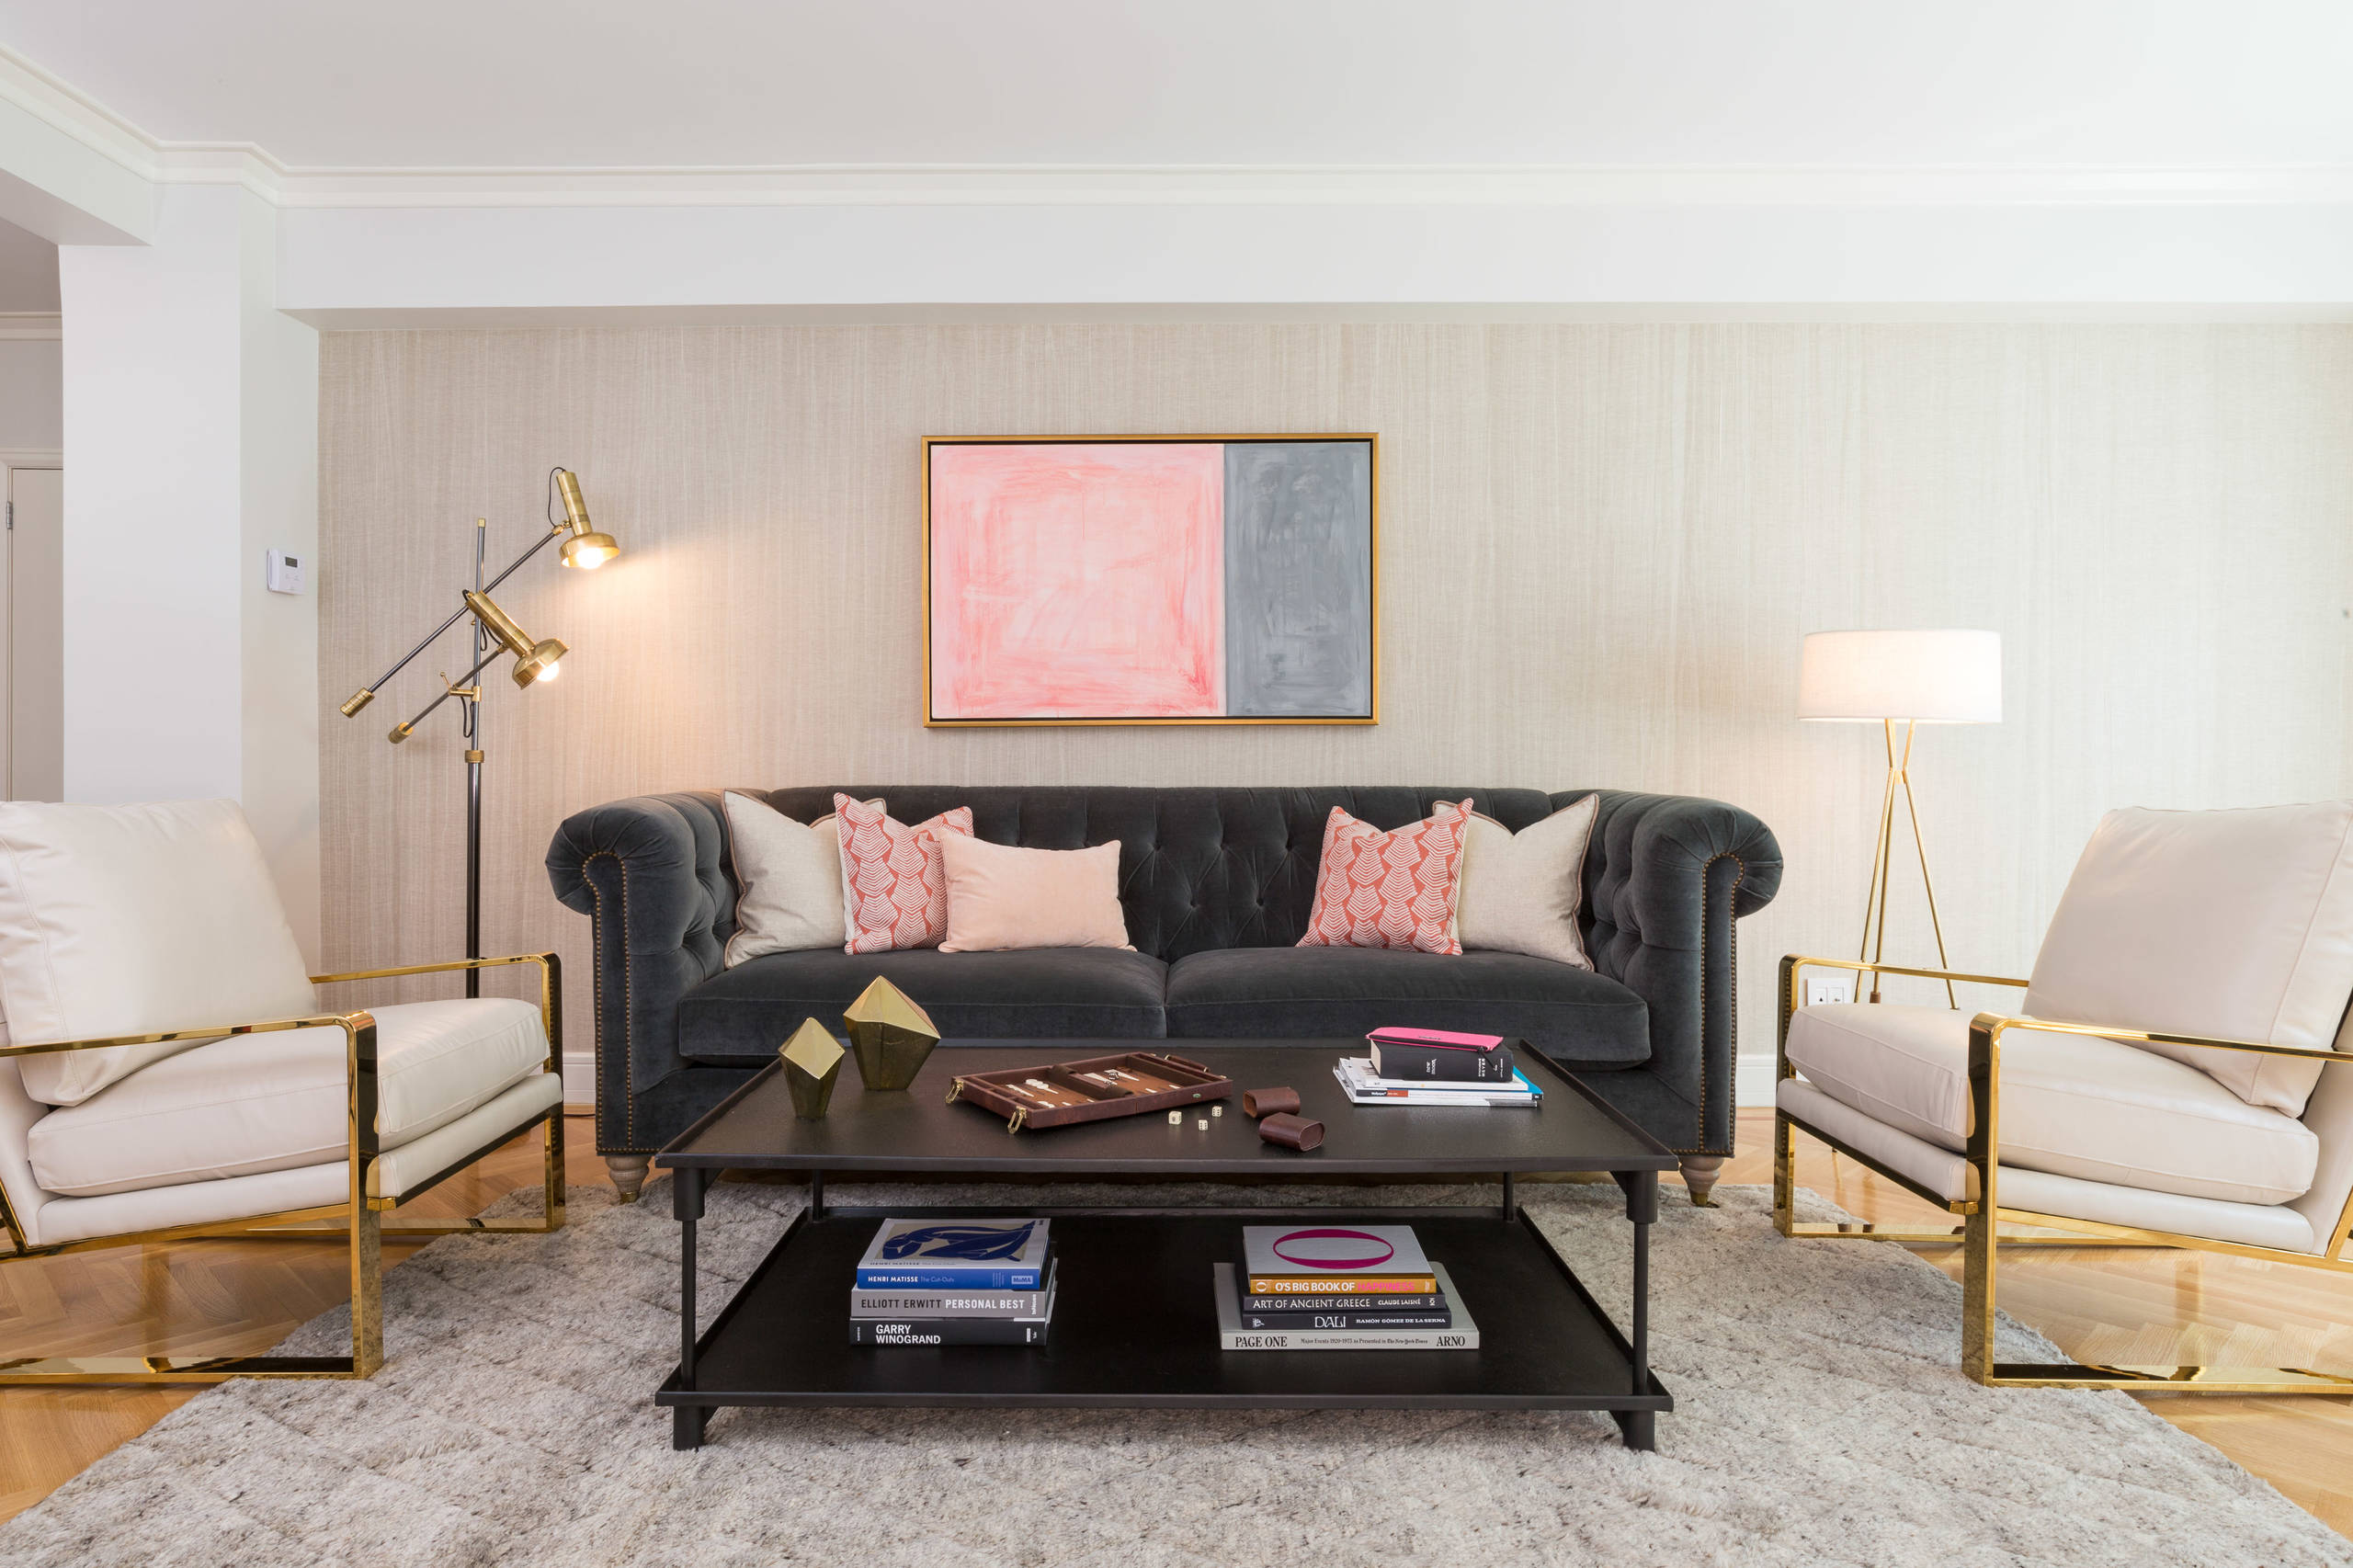 Which Type Velvet Sofa Should You Buy For Your Home